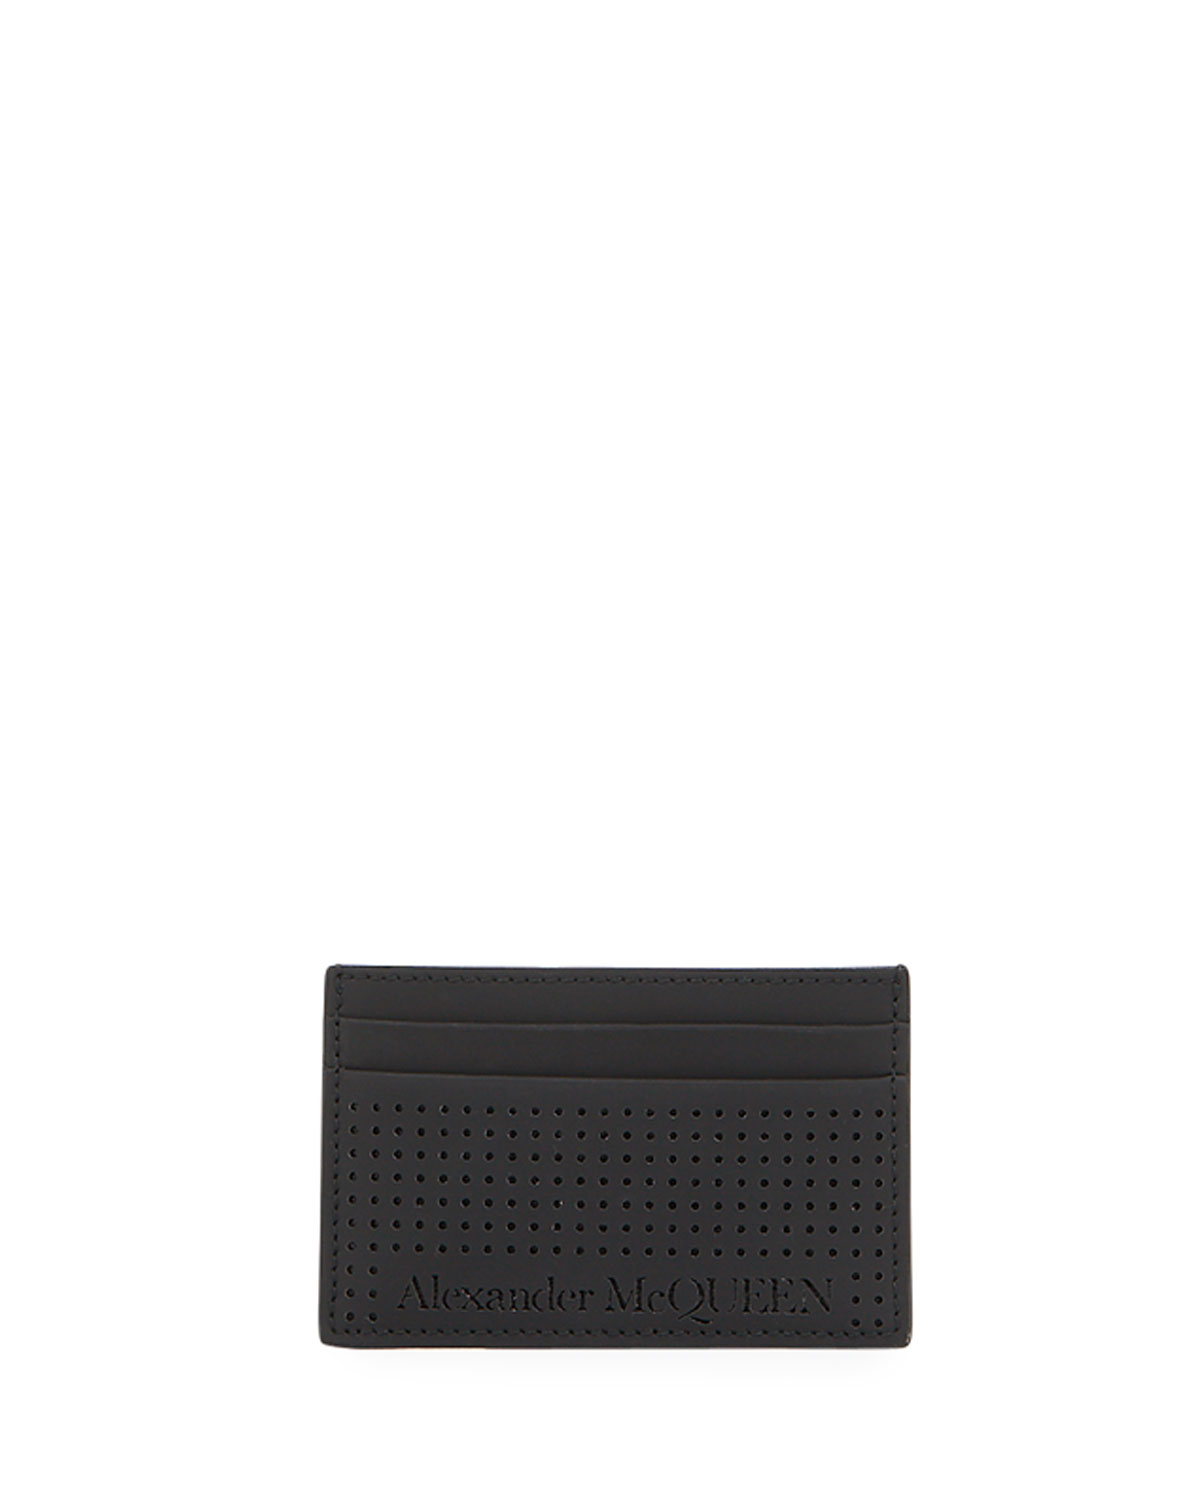 Alexander McQueen Men's Perforated Leather Card Case